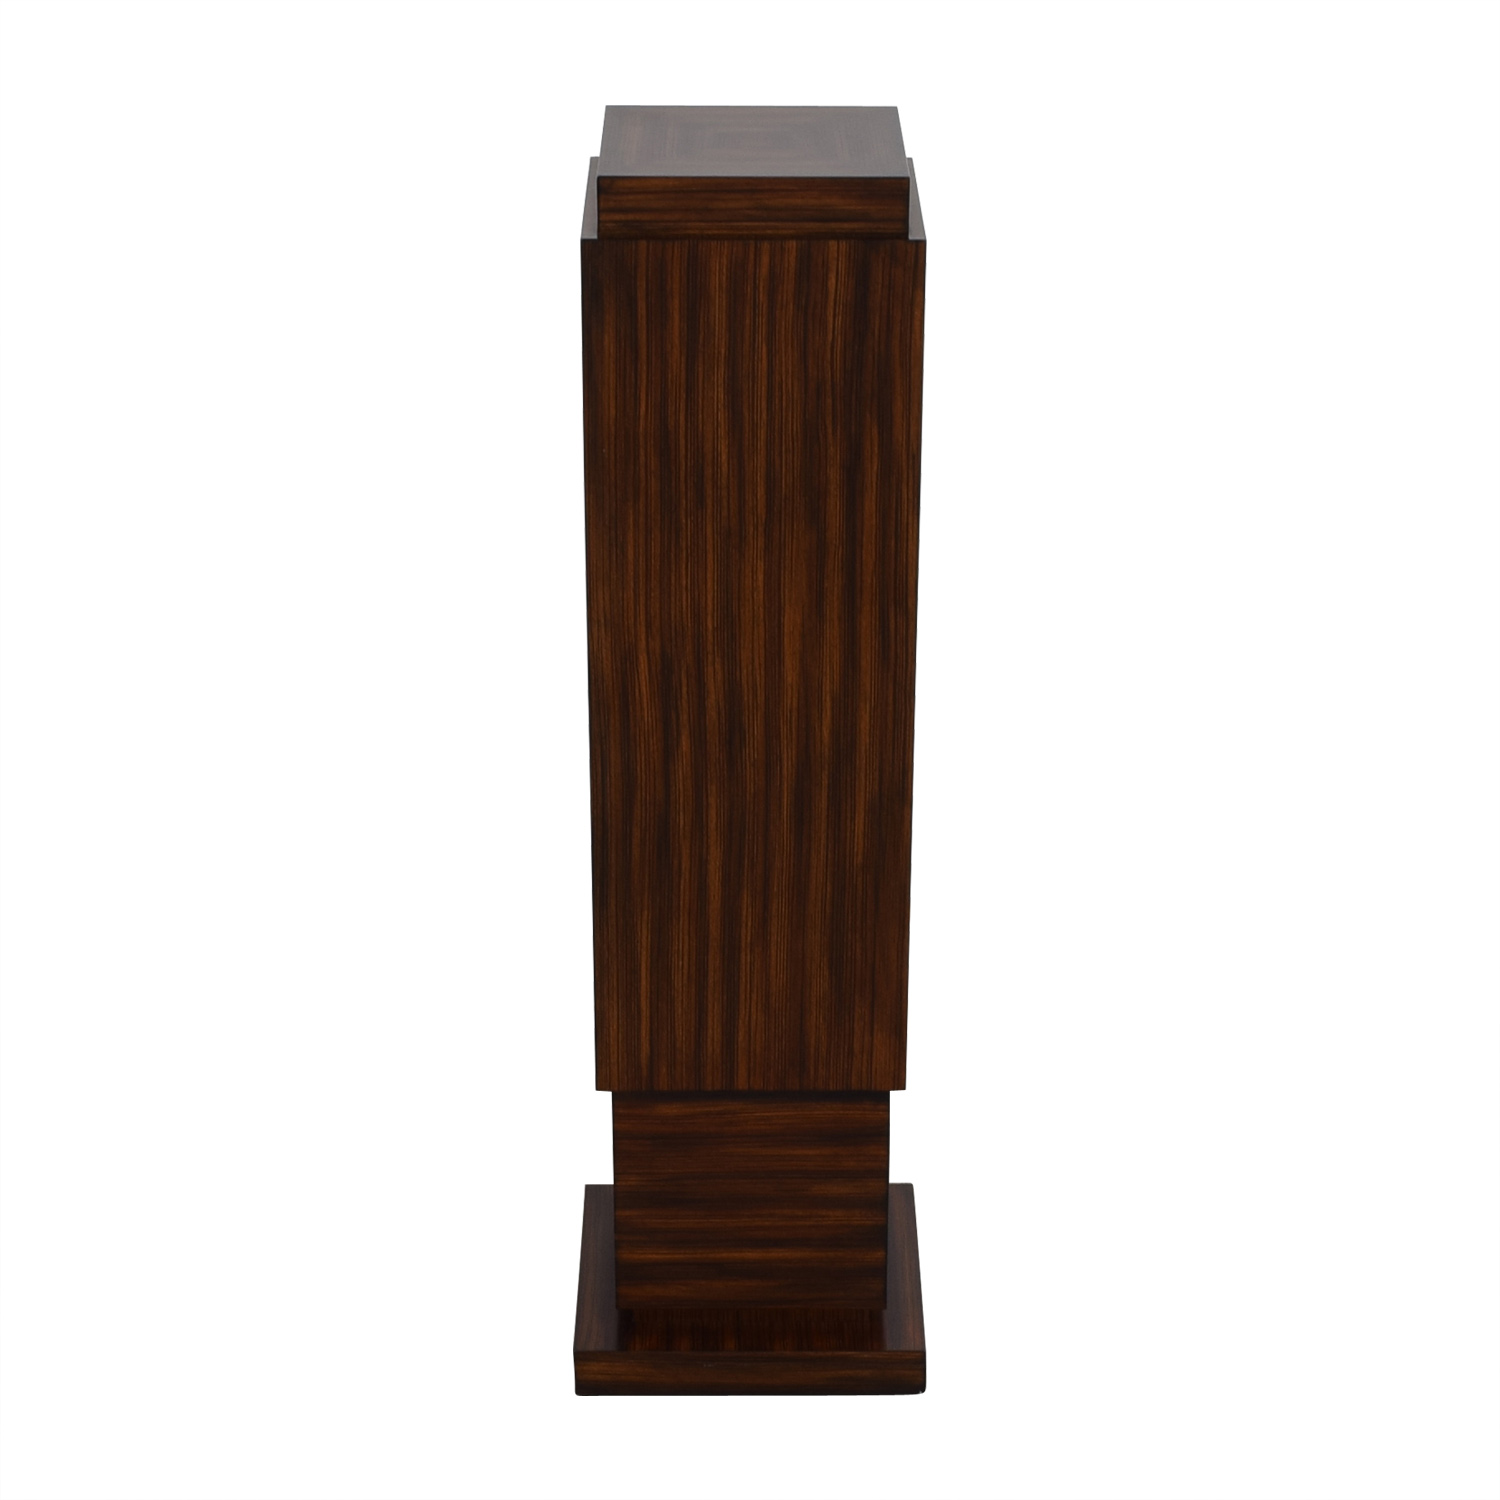 Custom Art Pedestal for sale